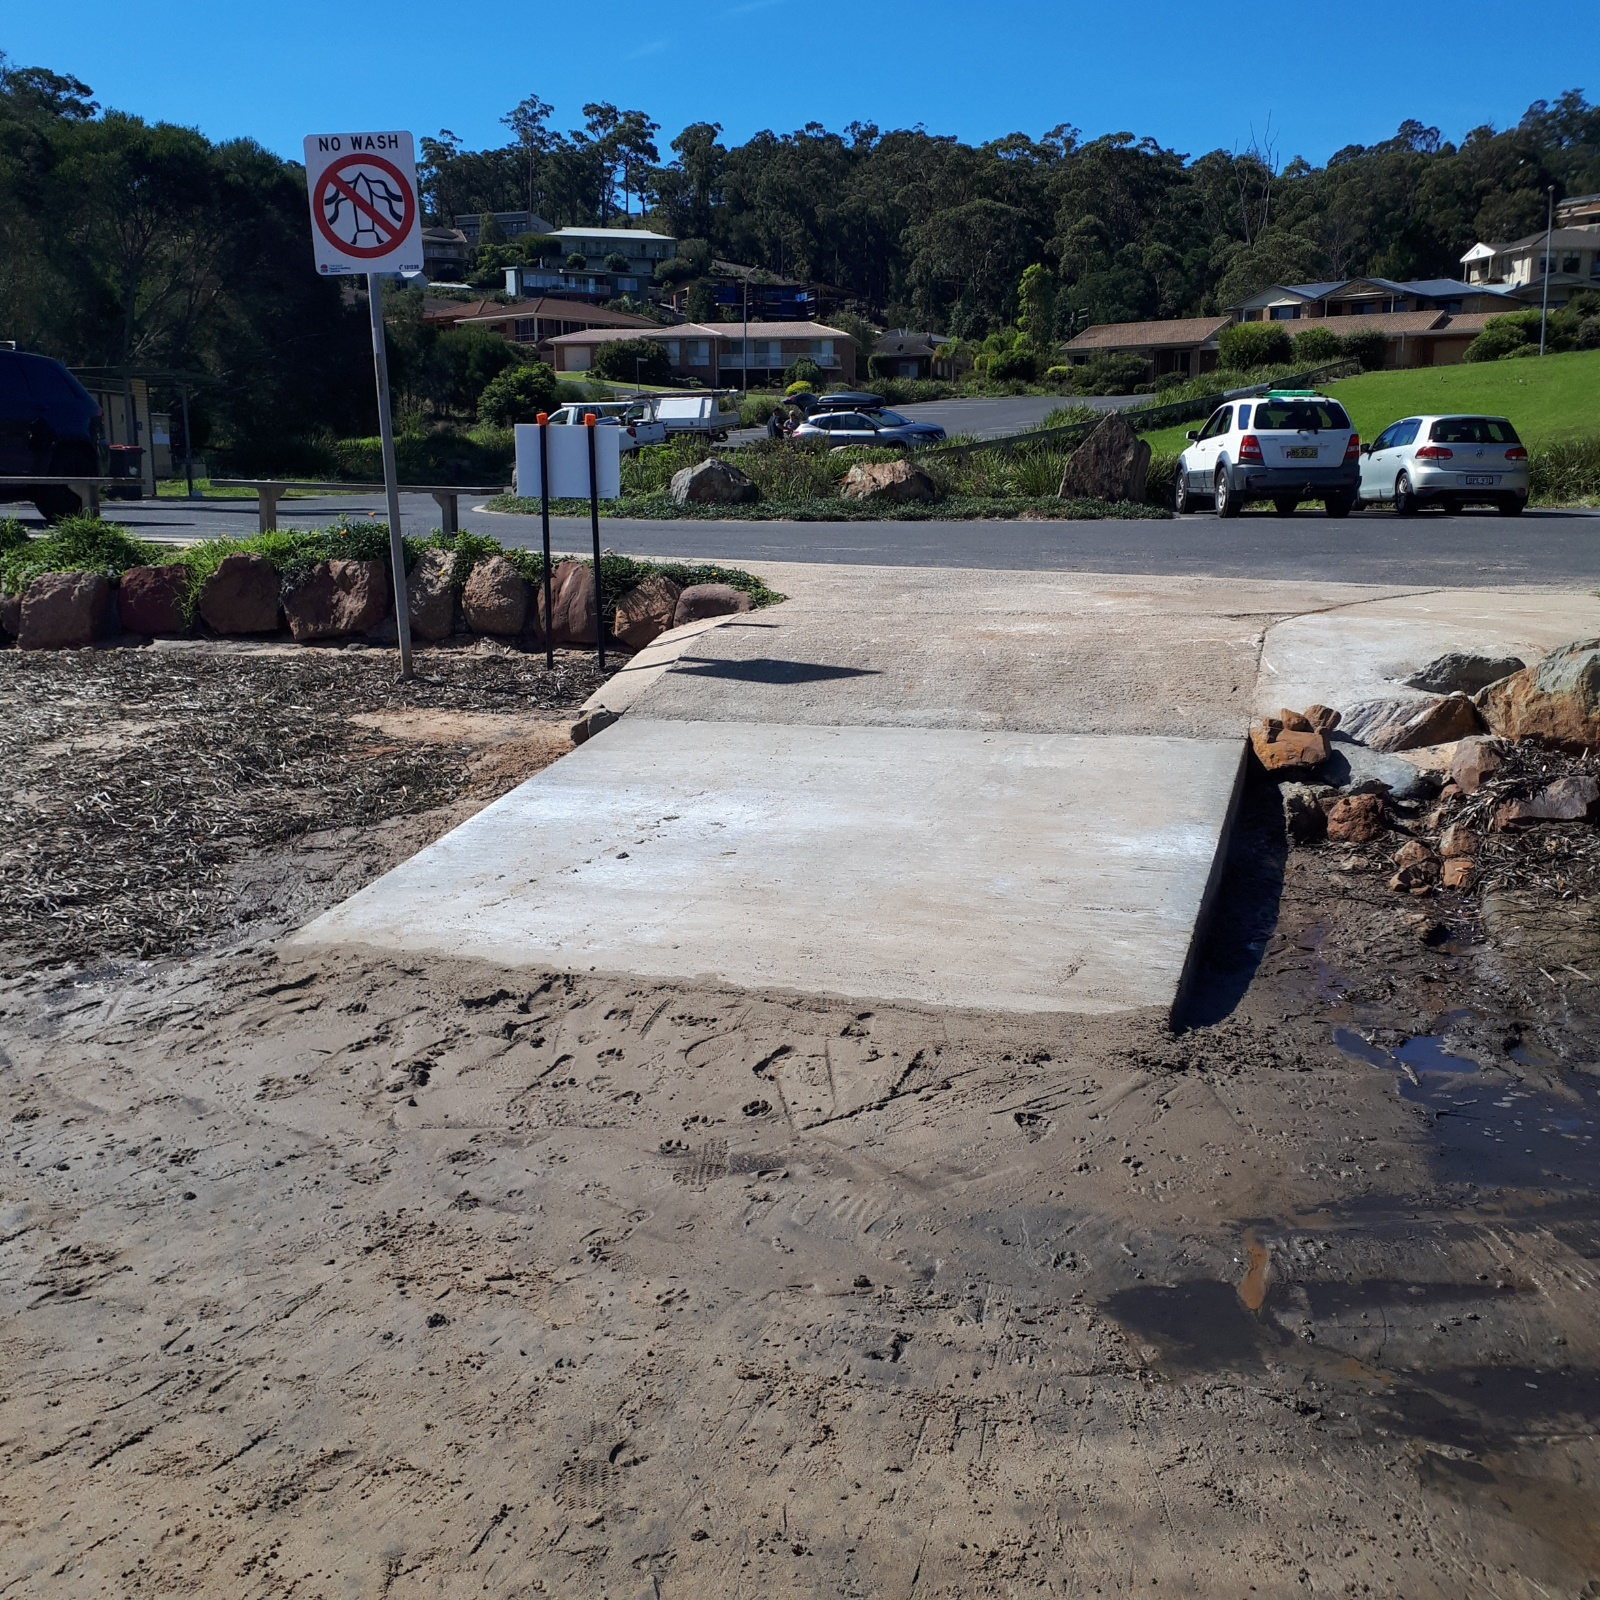 Merimbula Top Lake boat ramp.